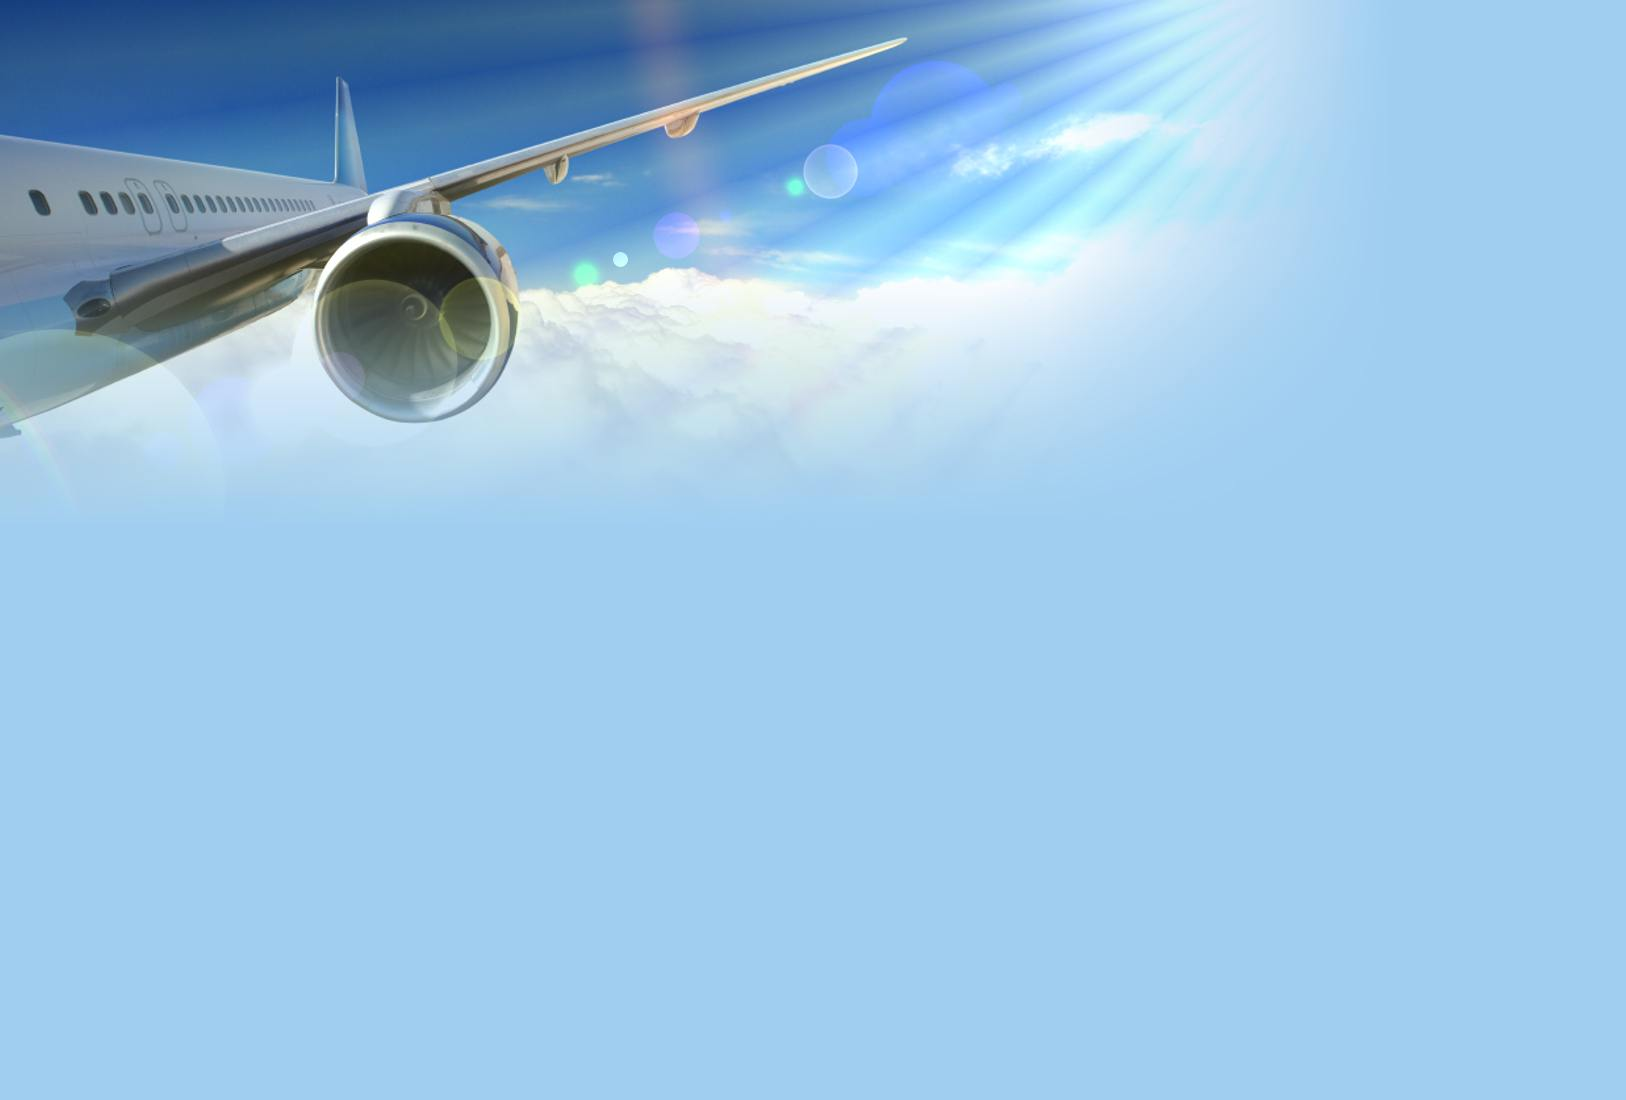 This is the Flight airplane cloud and sun ray background image You 1626x1100